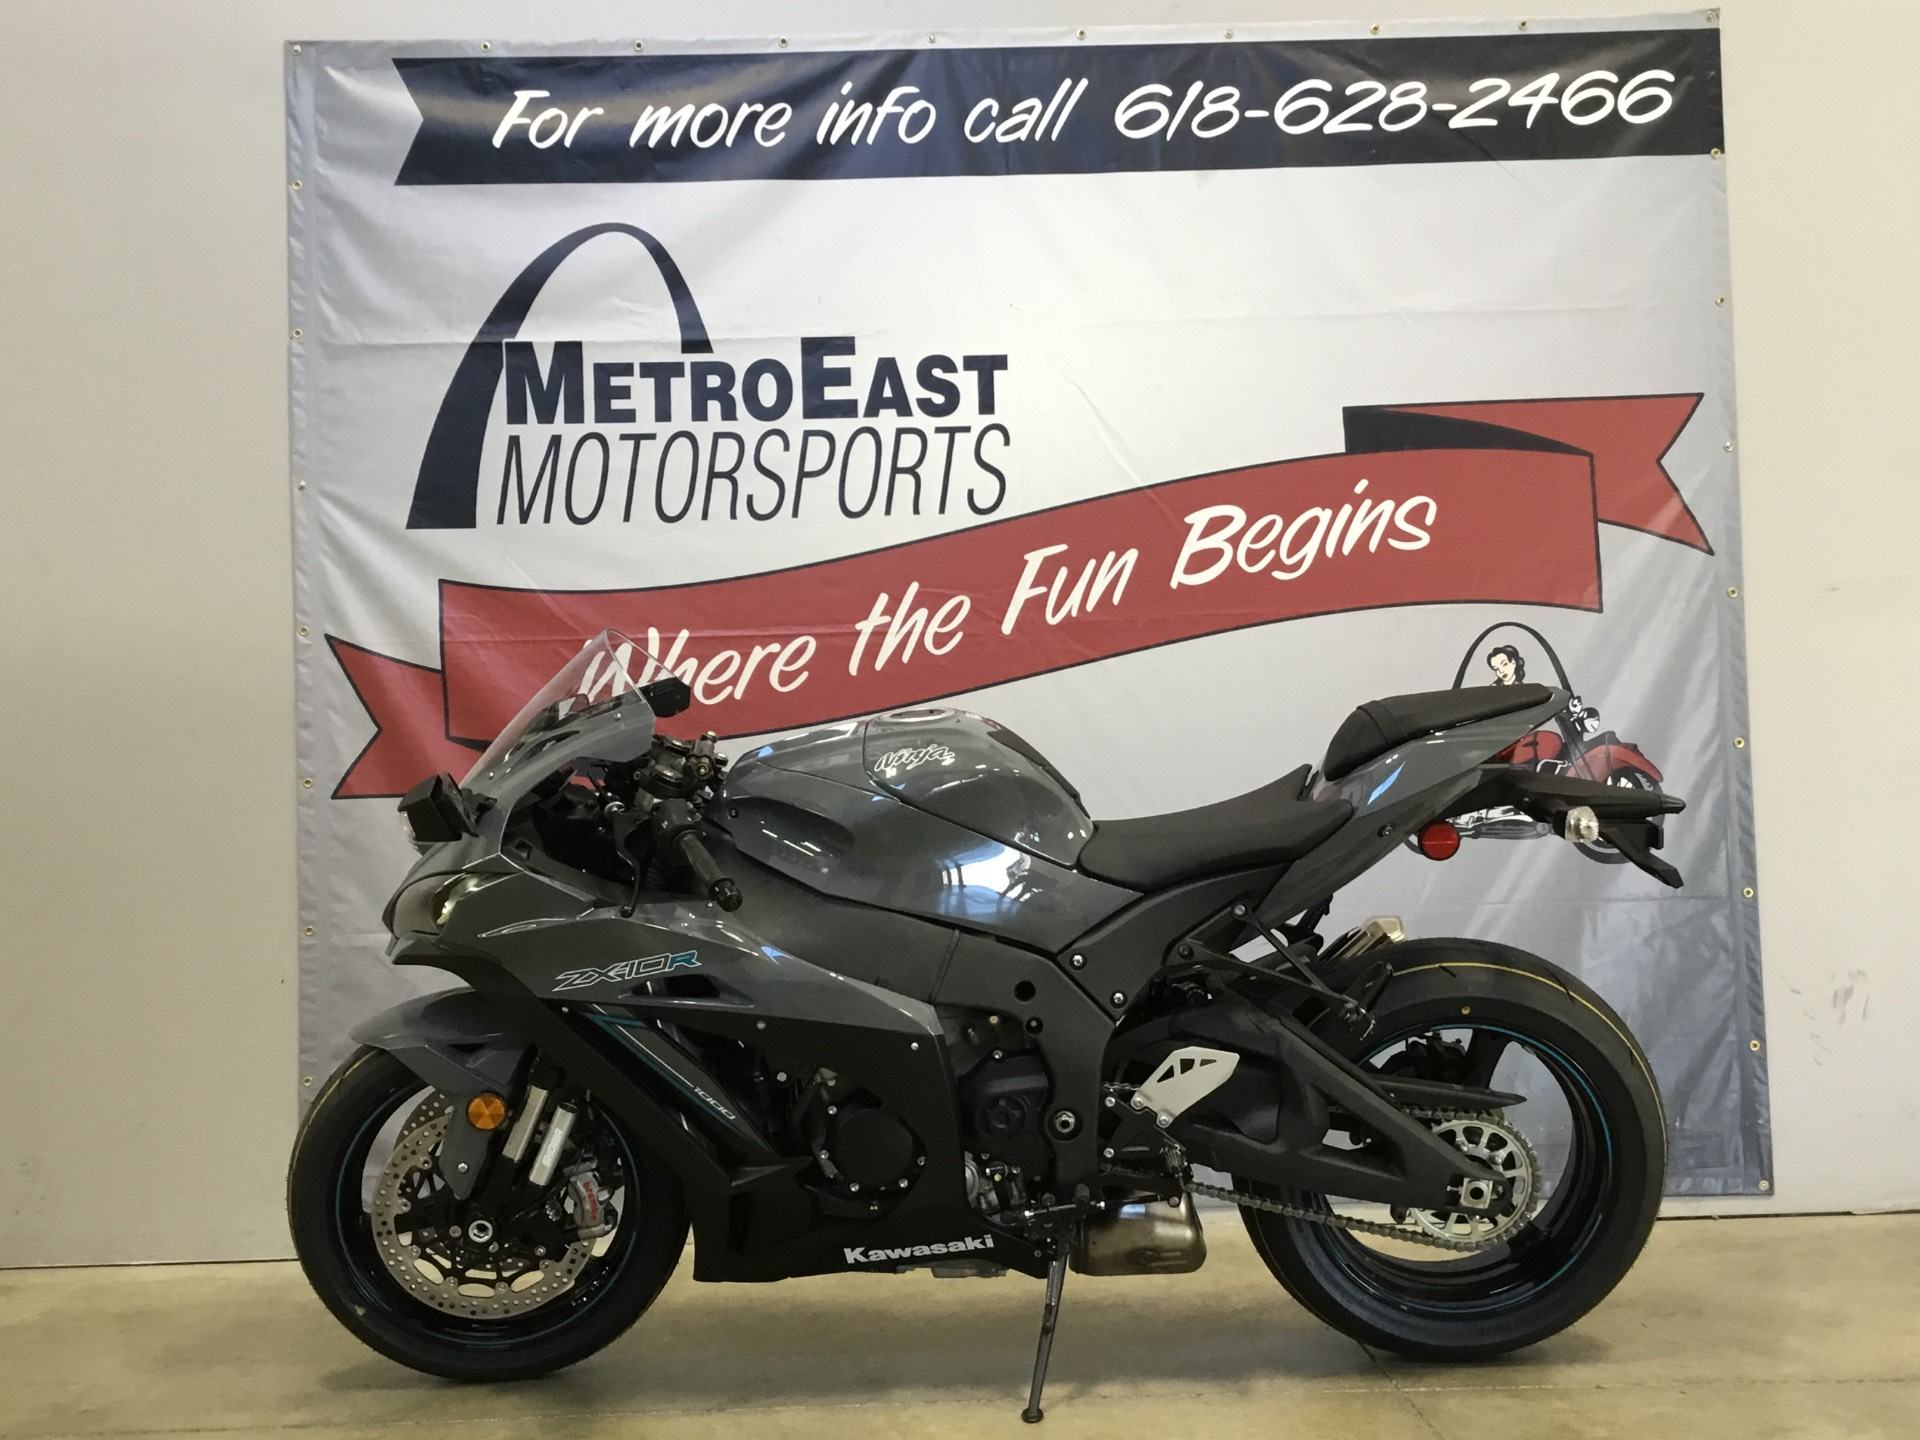 New 2019 Kawasaki Ninja Zx 10r Motorcycles In O Fallon Il Stock